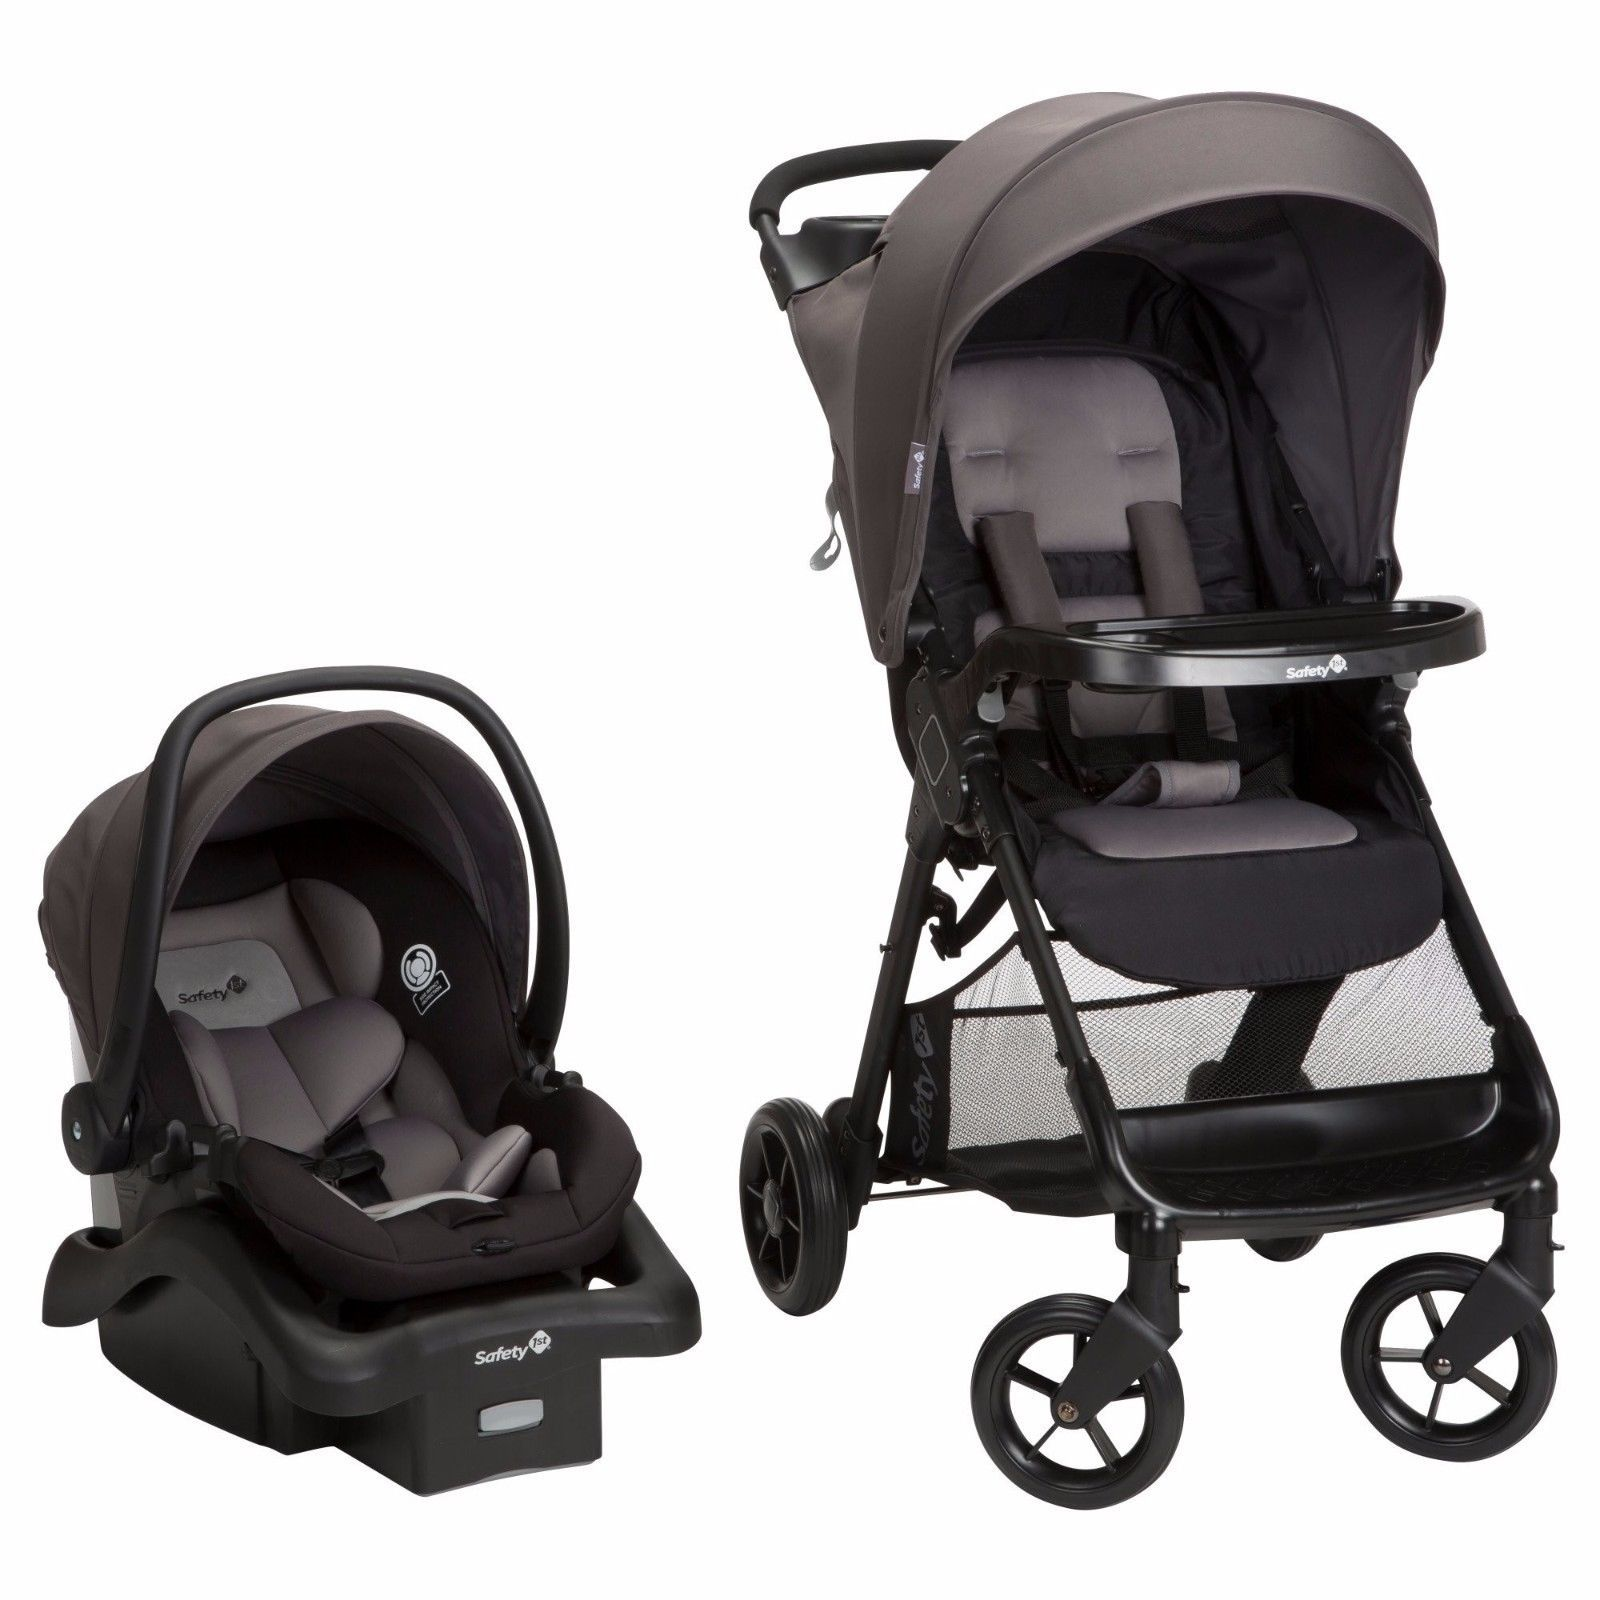 Safety 1St Onboard 35 Air Smooth Ride Travel System LT